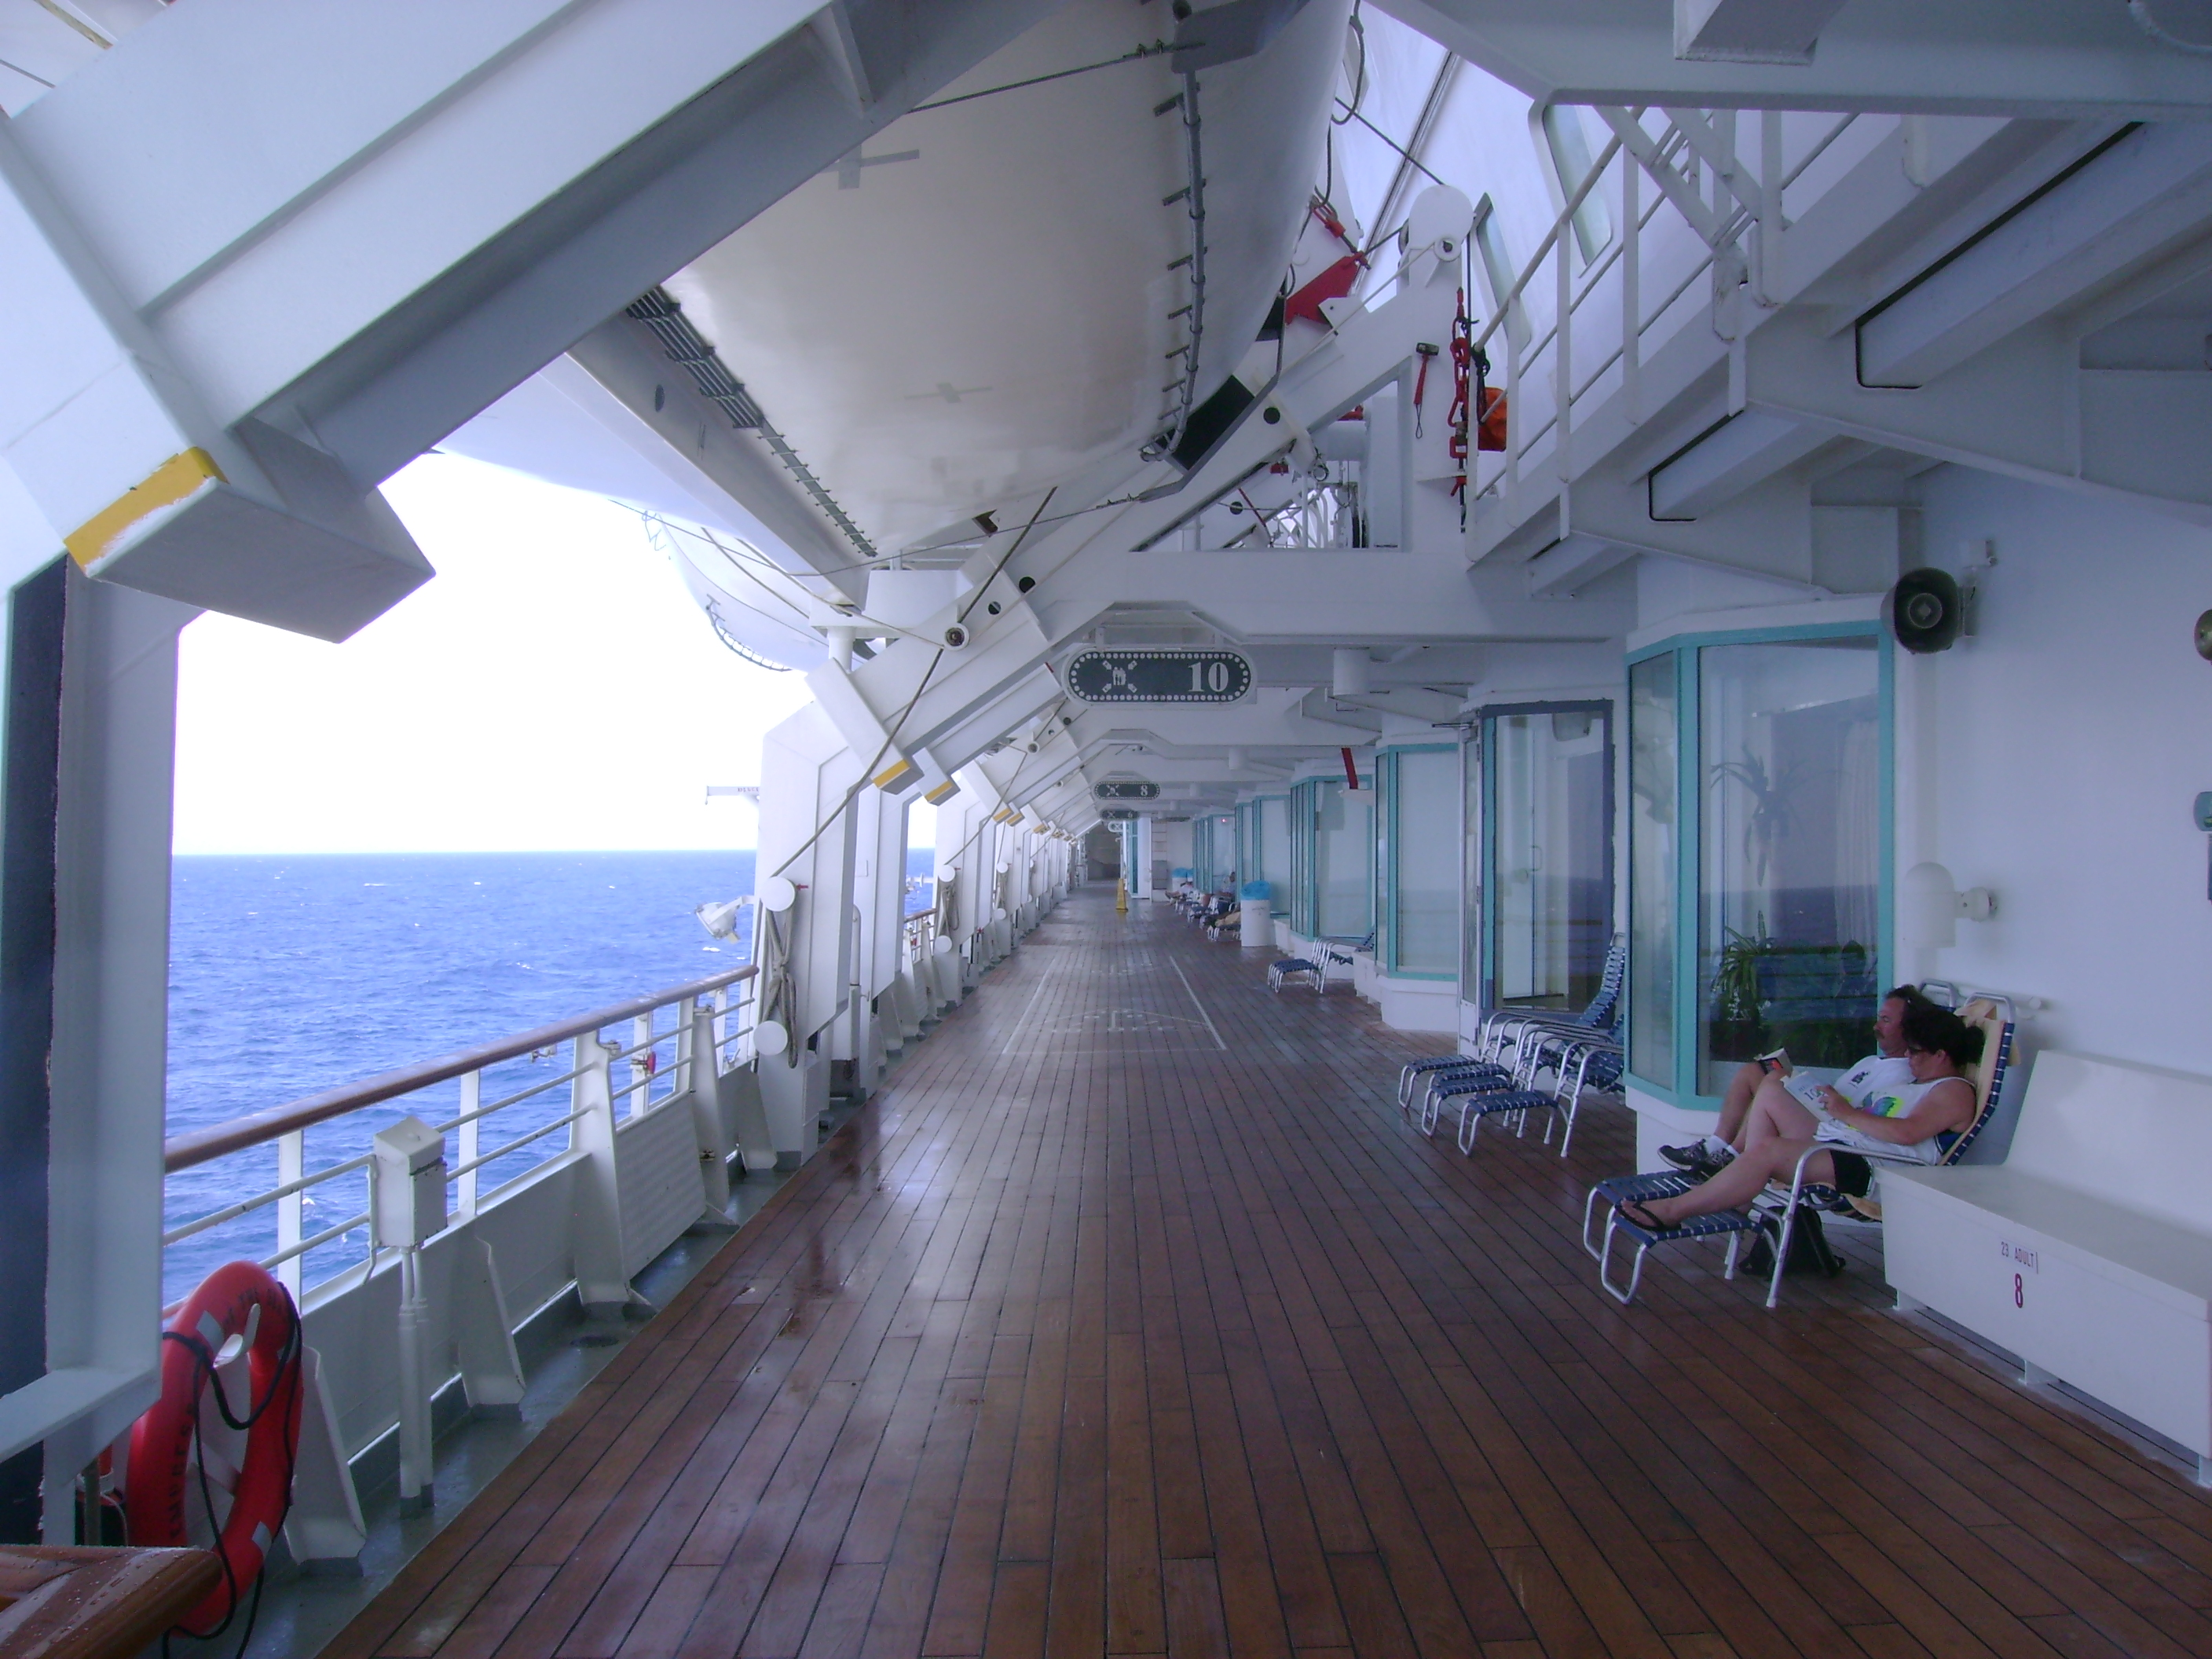 My Top 7 Cruise Travel Tips